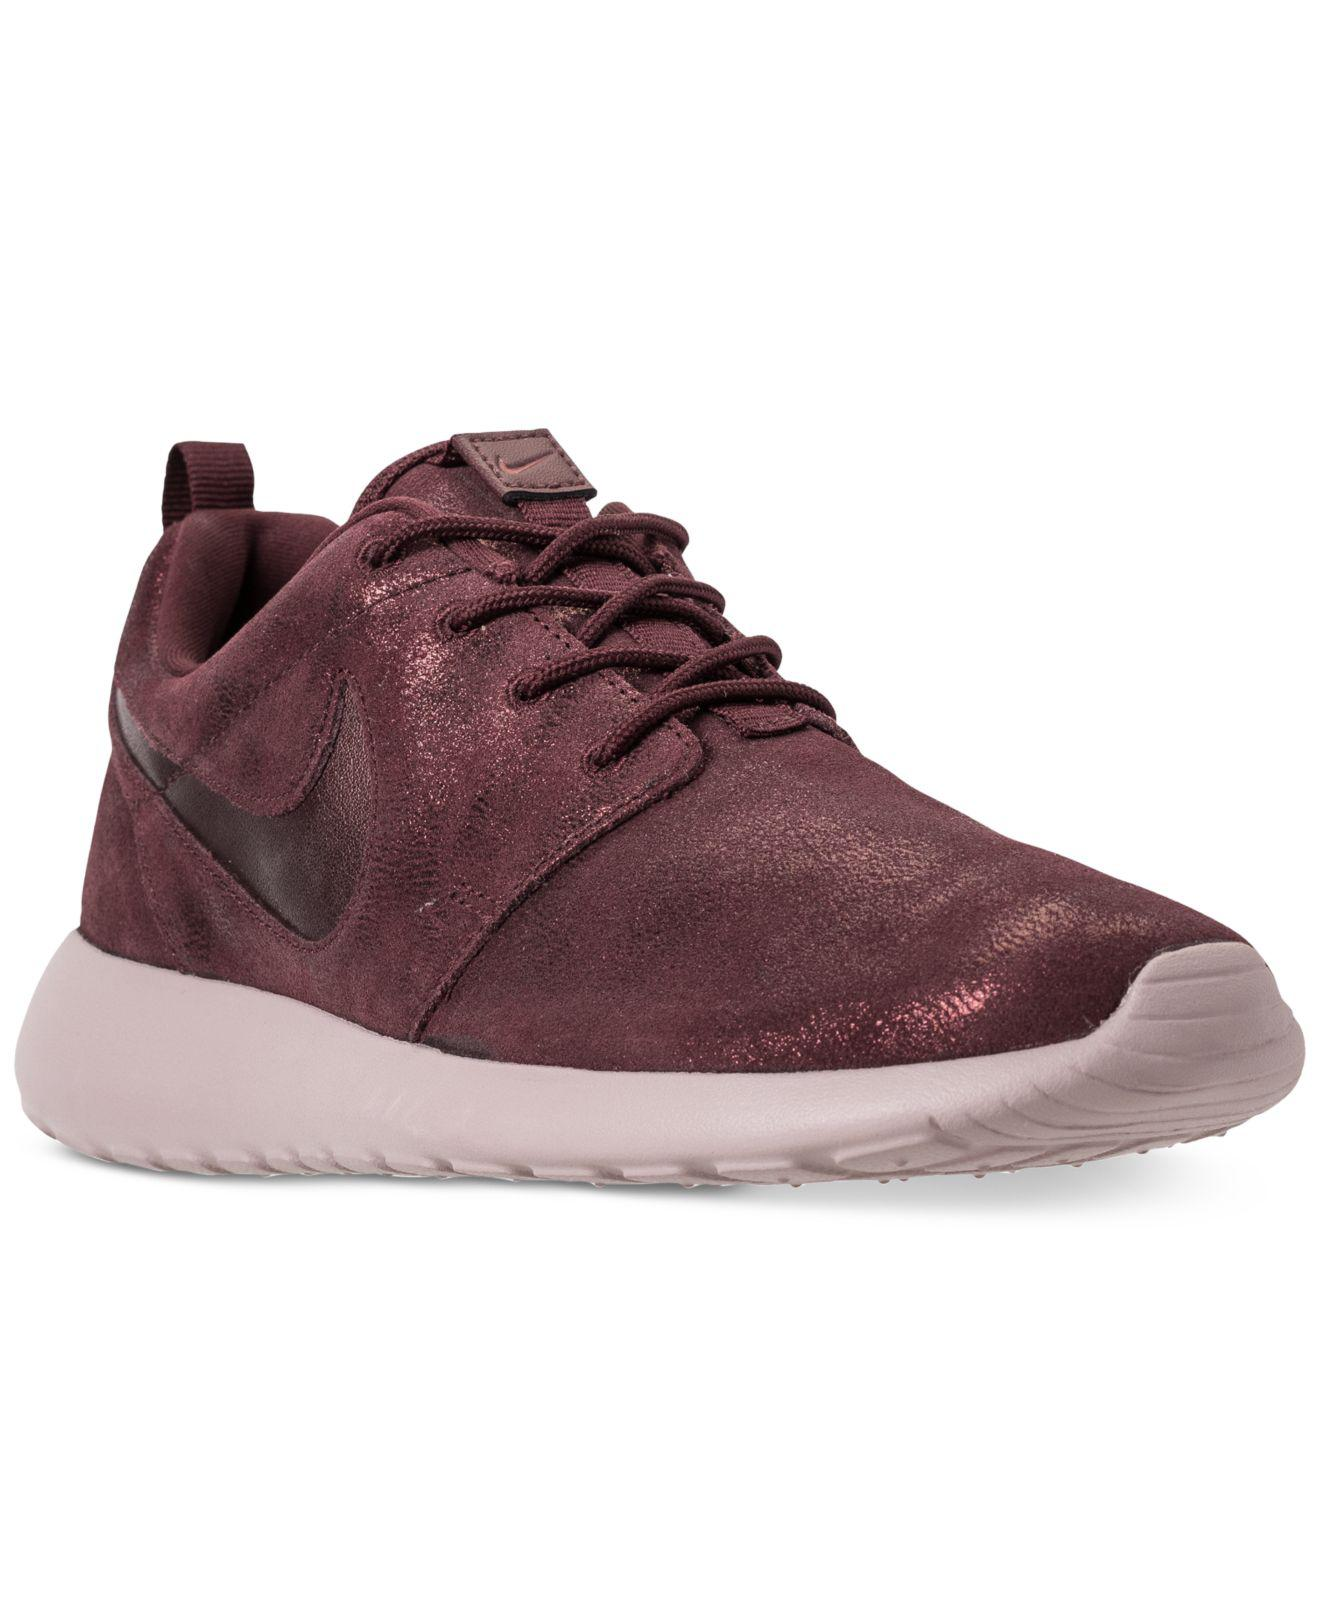 91086b55c6f Nike. Women s Roshe One Premium Casual Sneakers From Finish Line